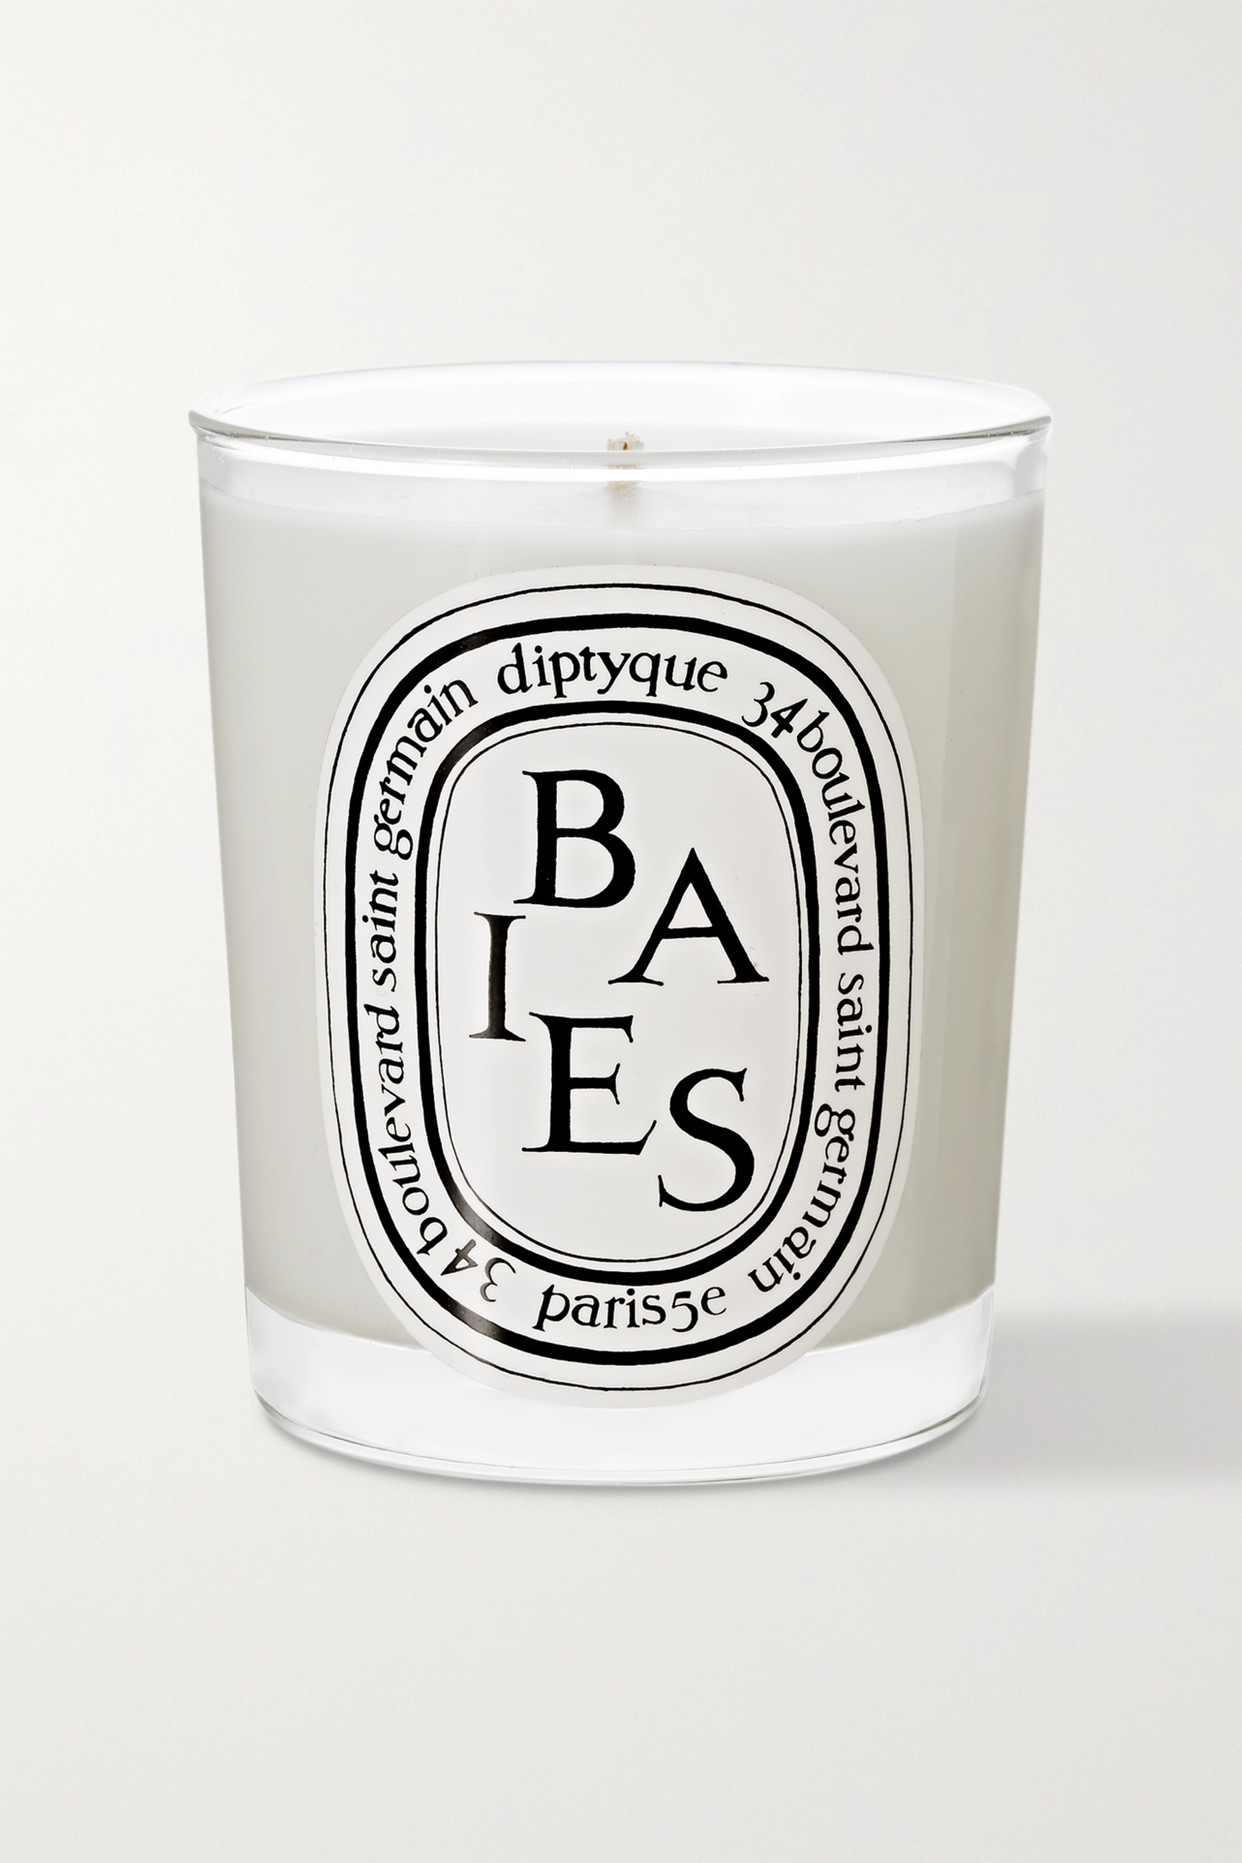 DIPTYQUE - Baies Scented Candle, 70g - one size